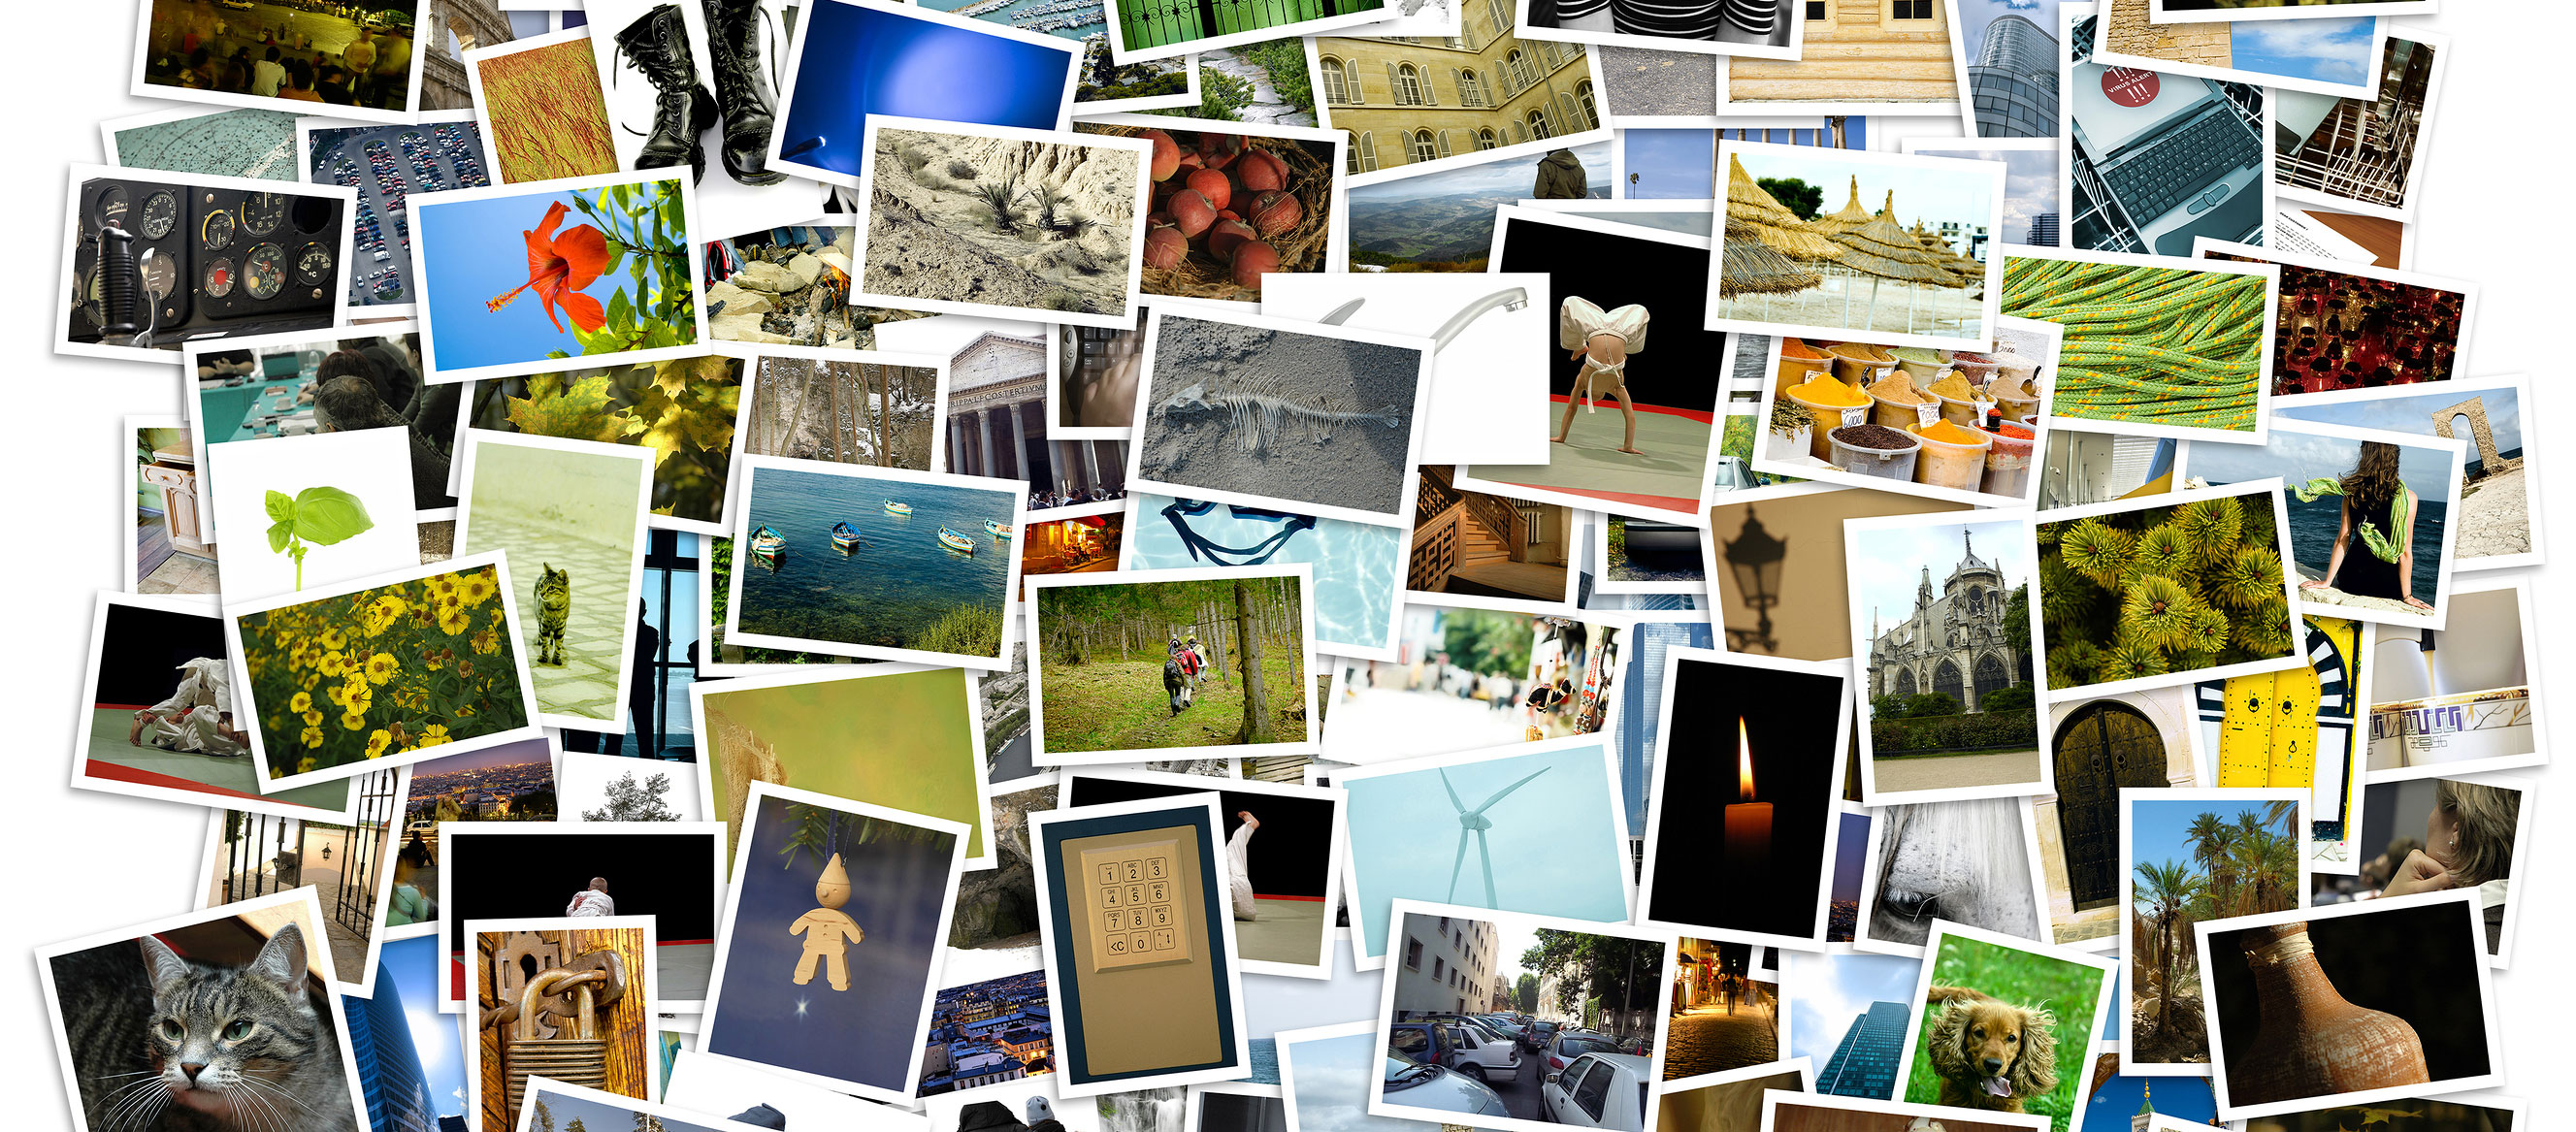 free-photos-1 How to Find the Best Free Images to Use on Your Blog